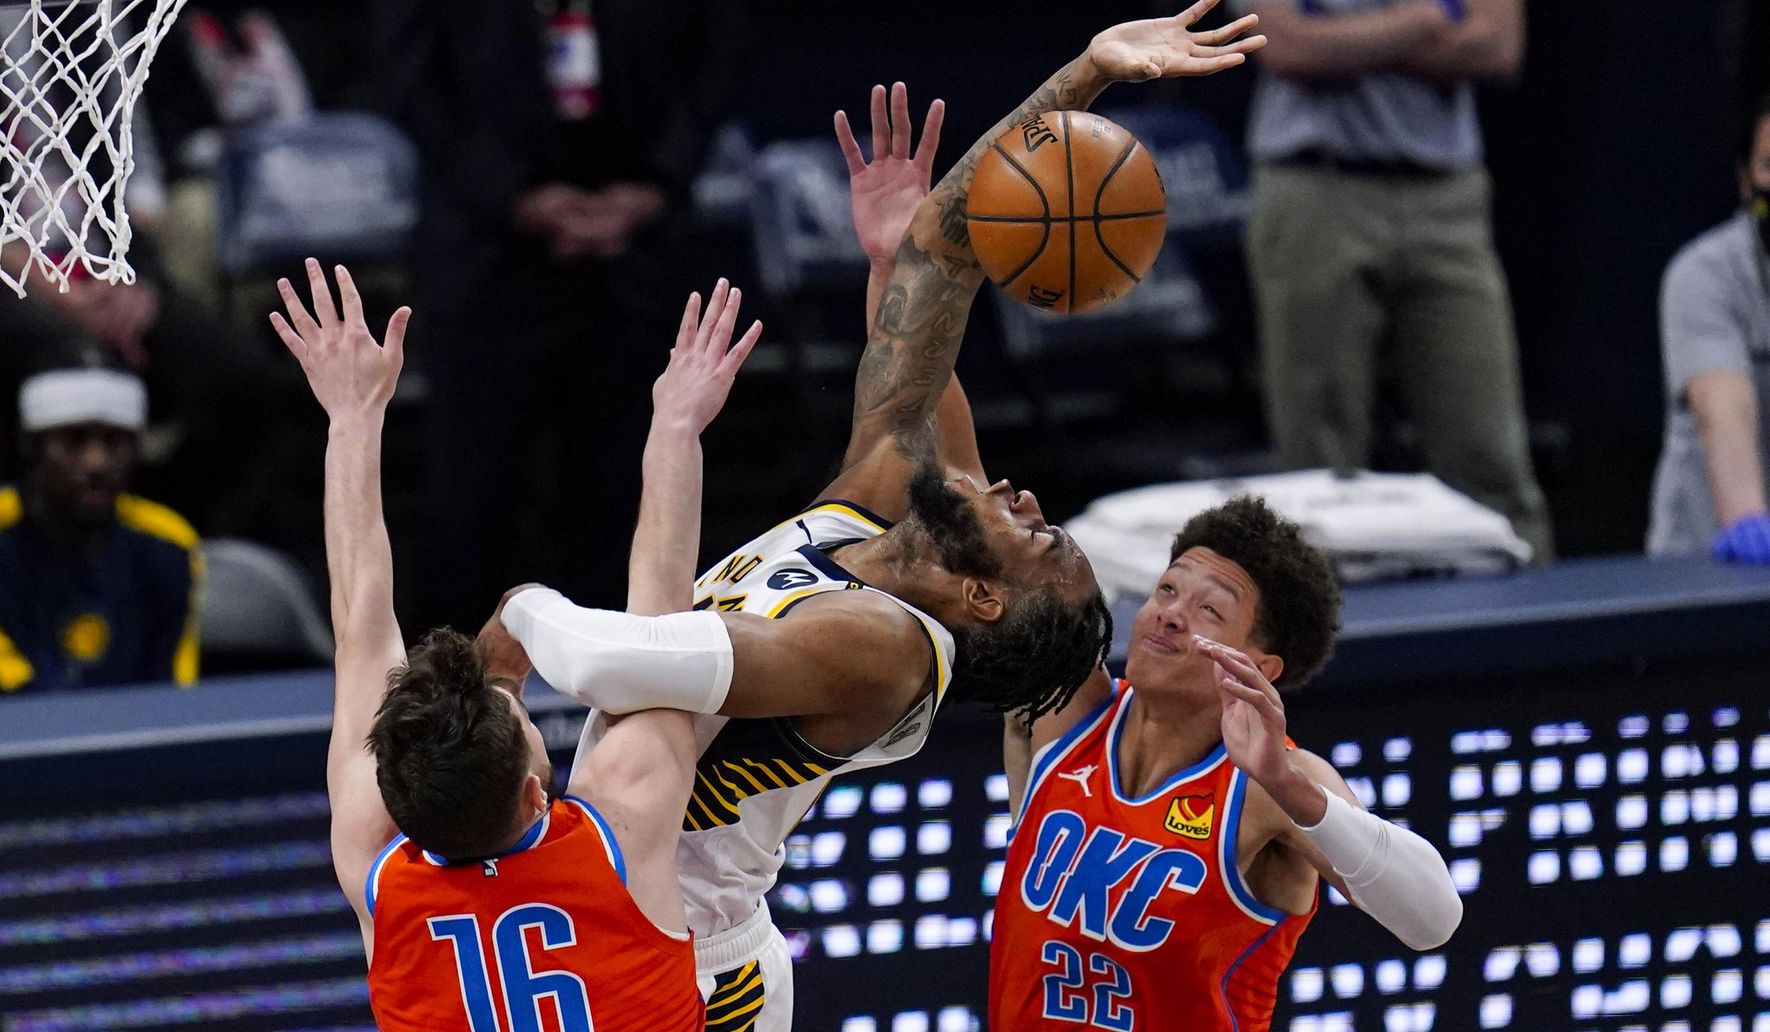 Thunder_pacers_basketball_71342_c0-125-2985-1865_s1770x1032